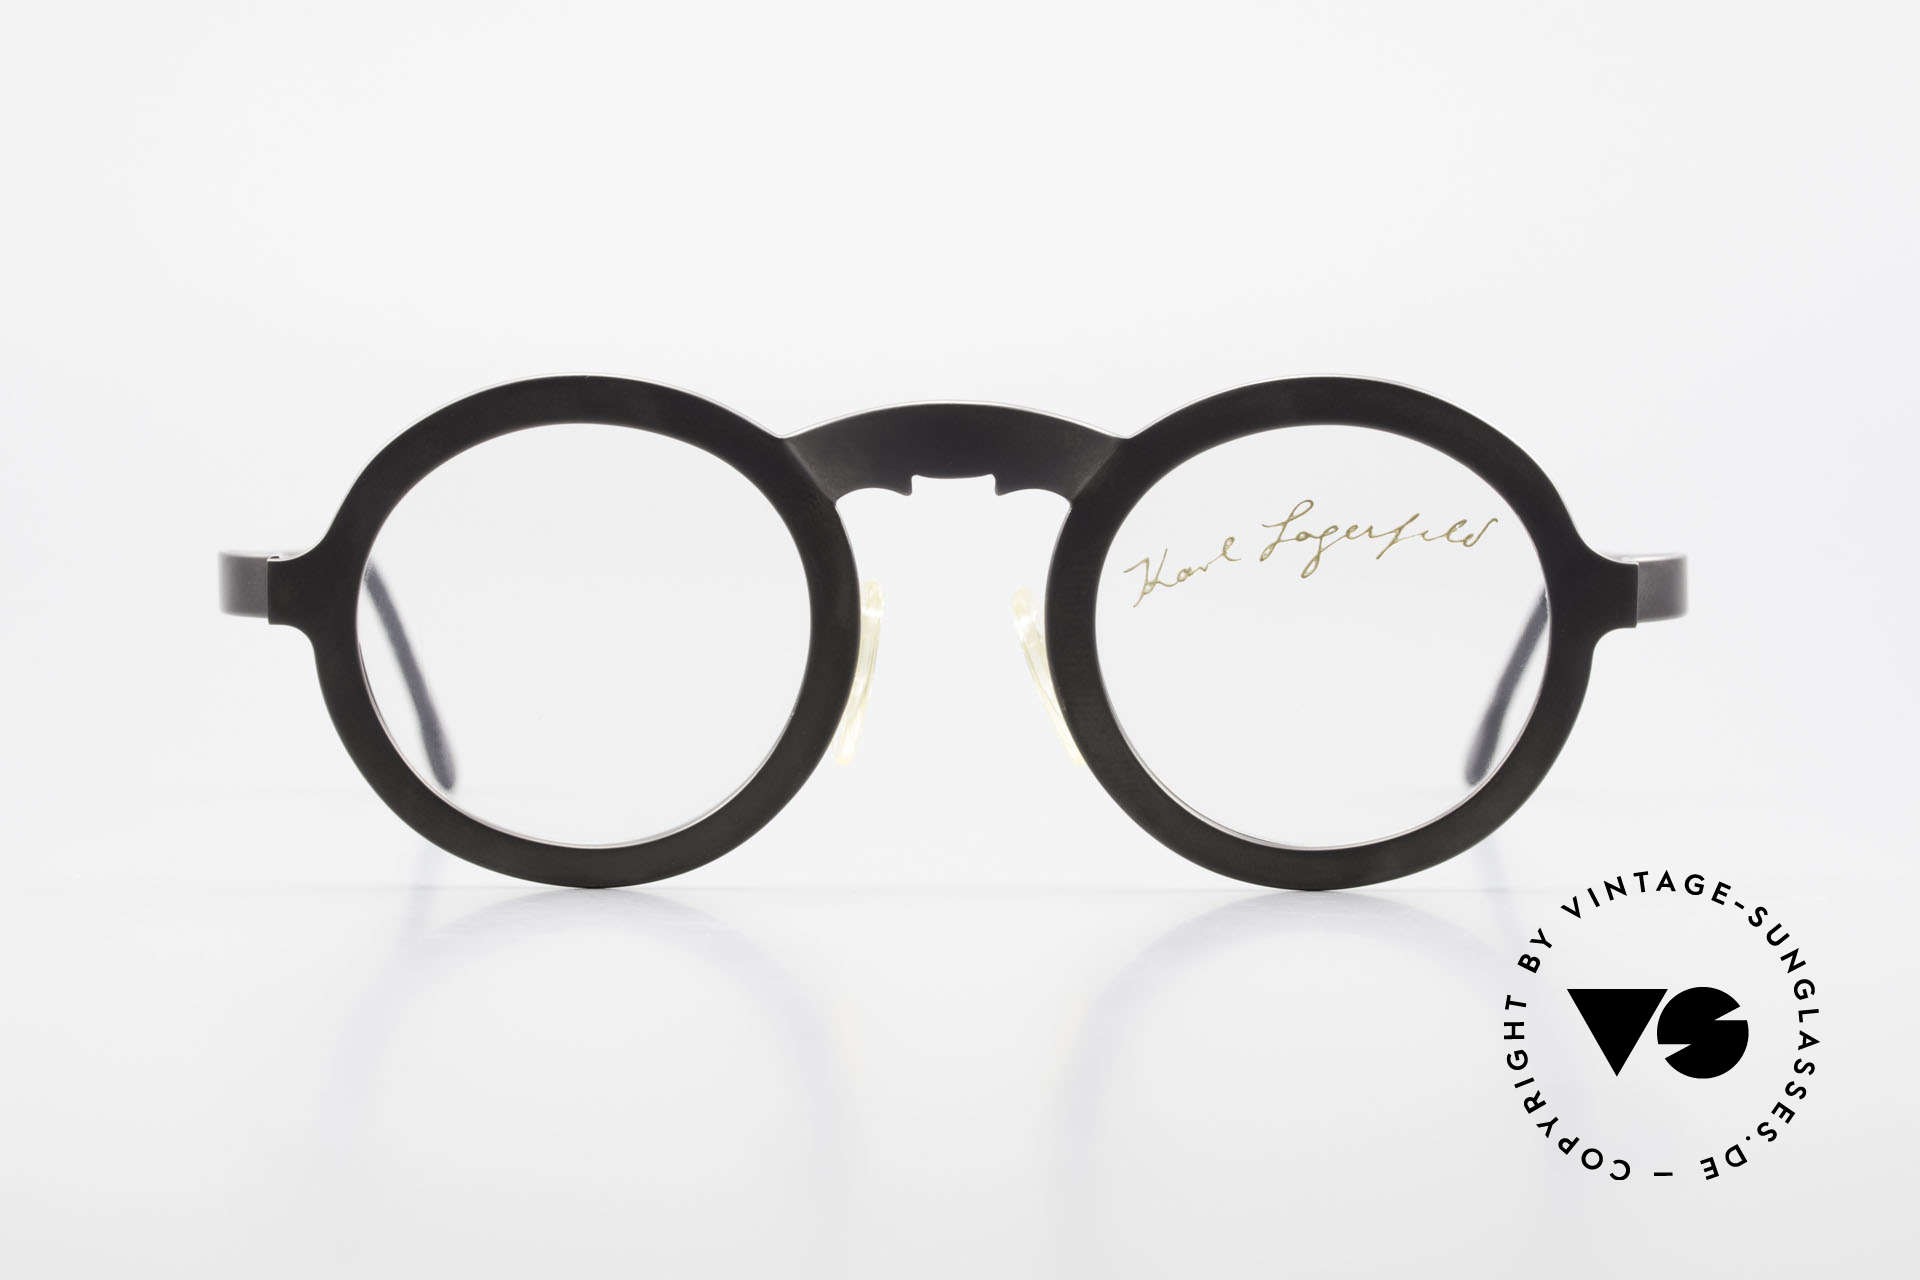 Karl Lagerfeld 4501 Round Panto Designer Frame, RARE limited edition - straight from the 1980's, Made for Men and Women